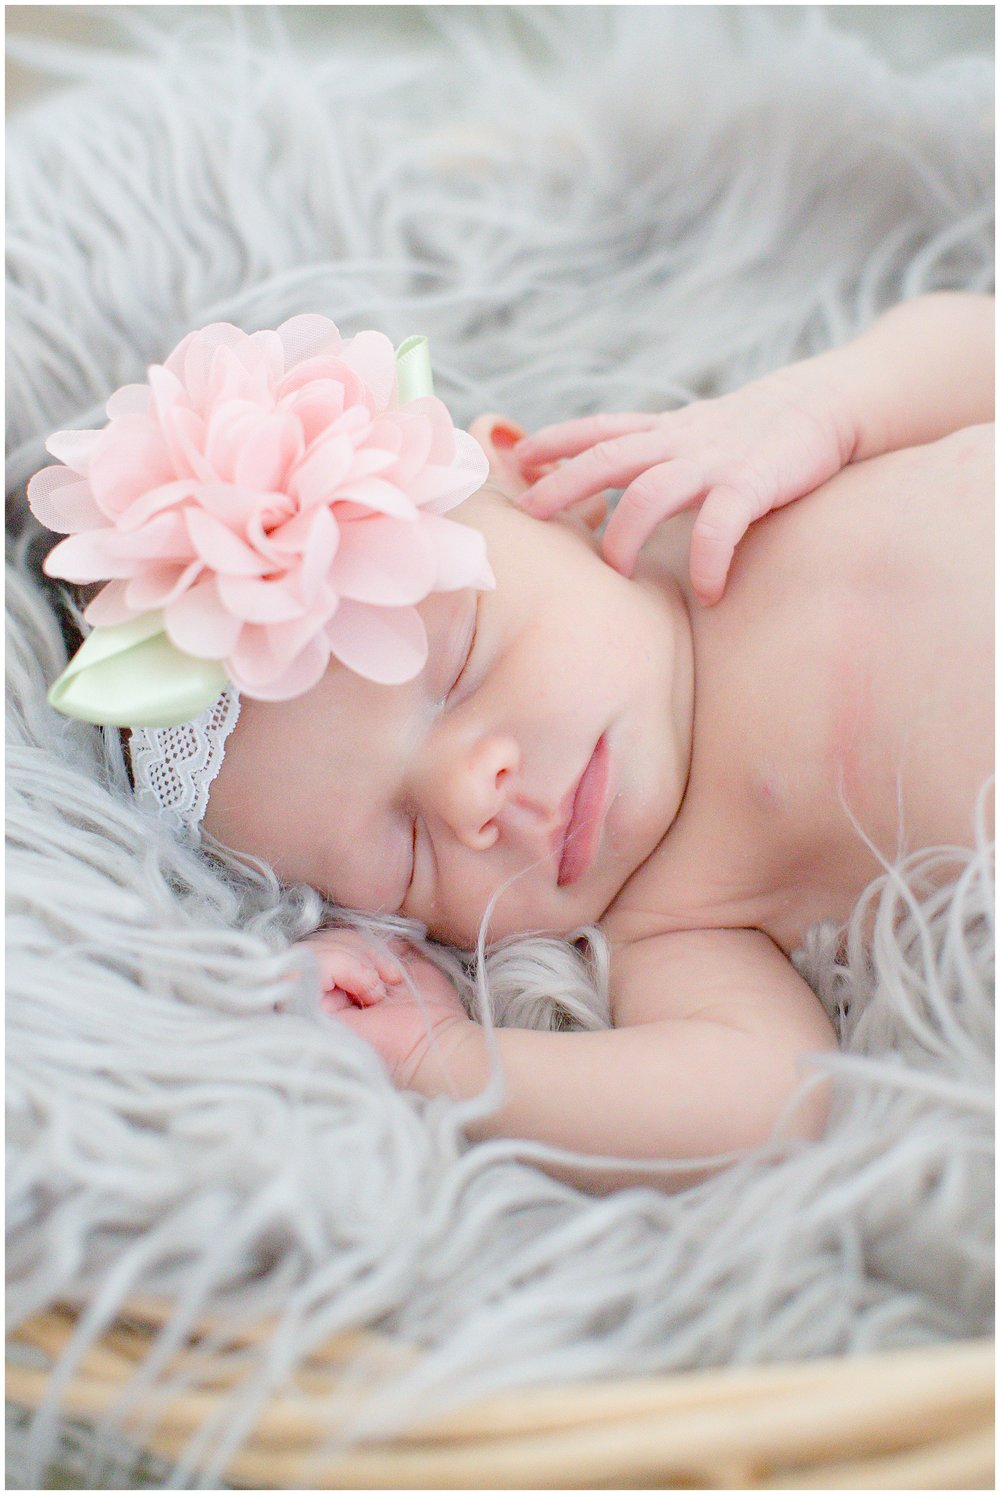 Letendre-newborn-session_0014.jpg